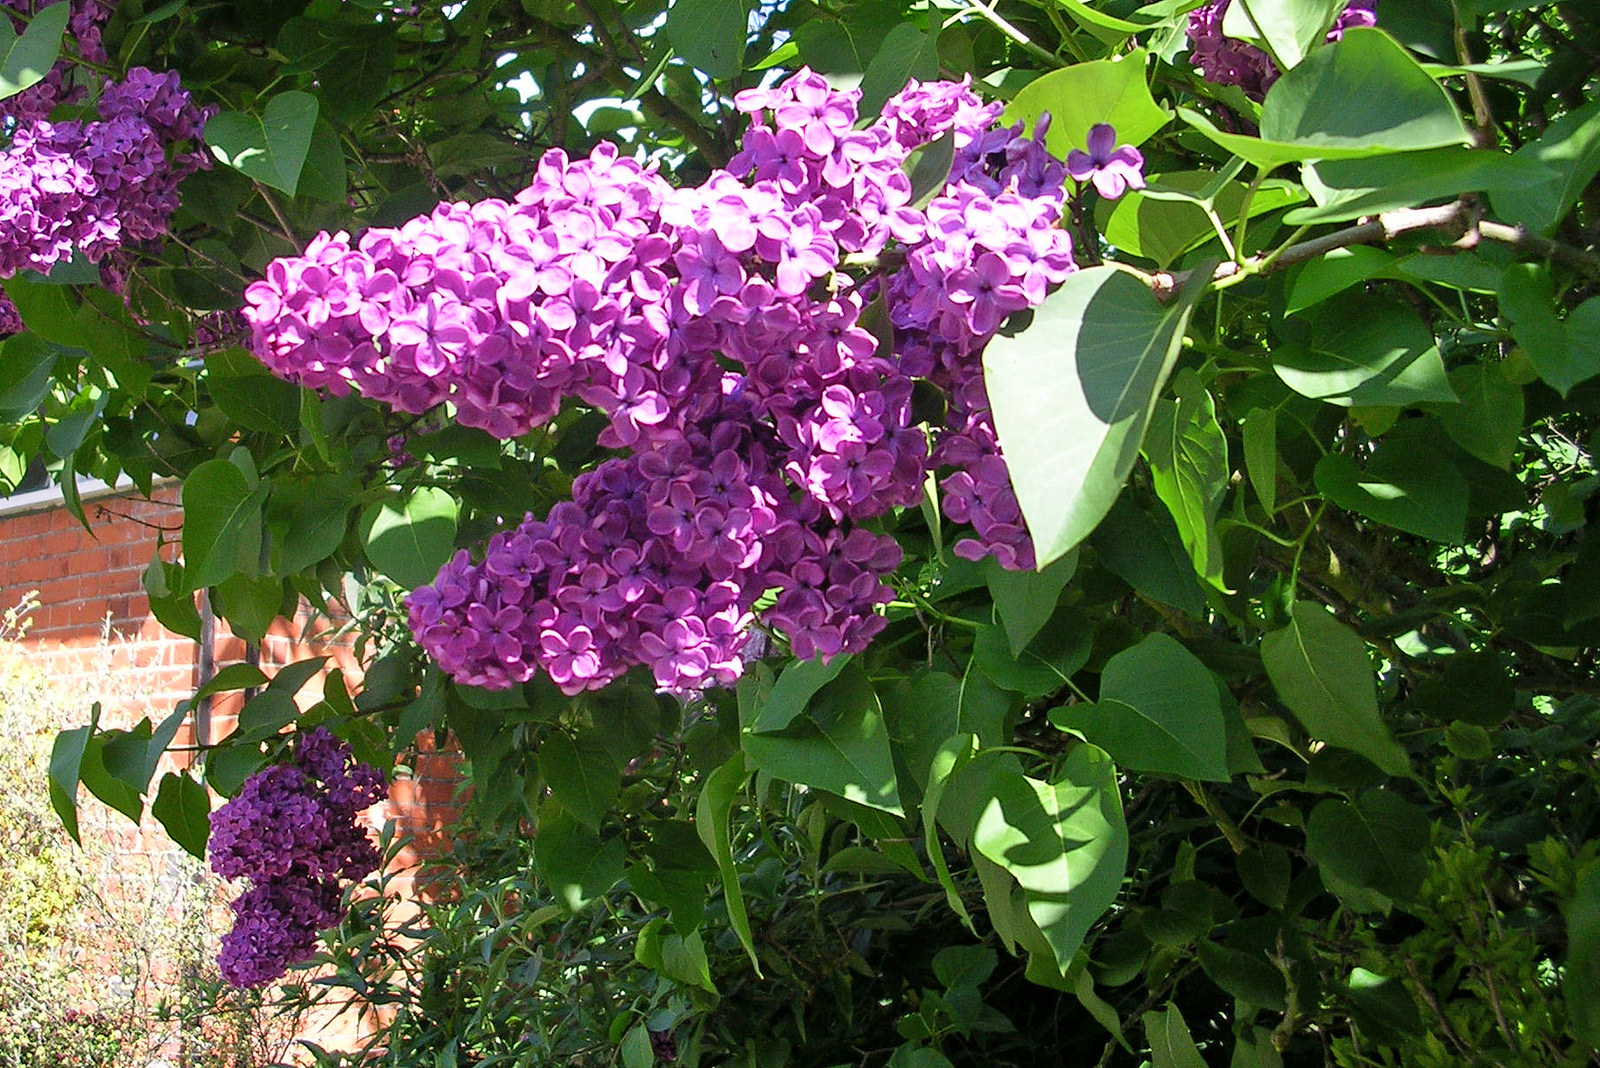 Thyrses du lilas commun. Crédits : Jane Nearing - Flickr